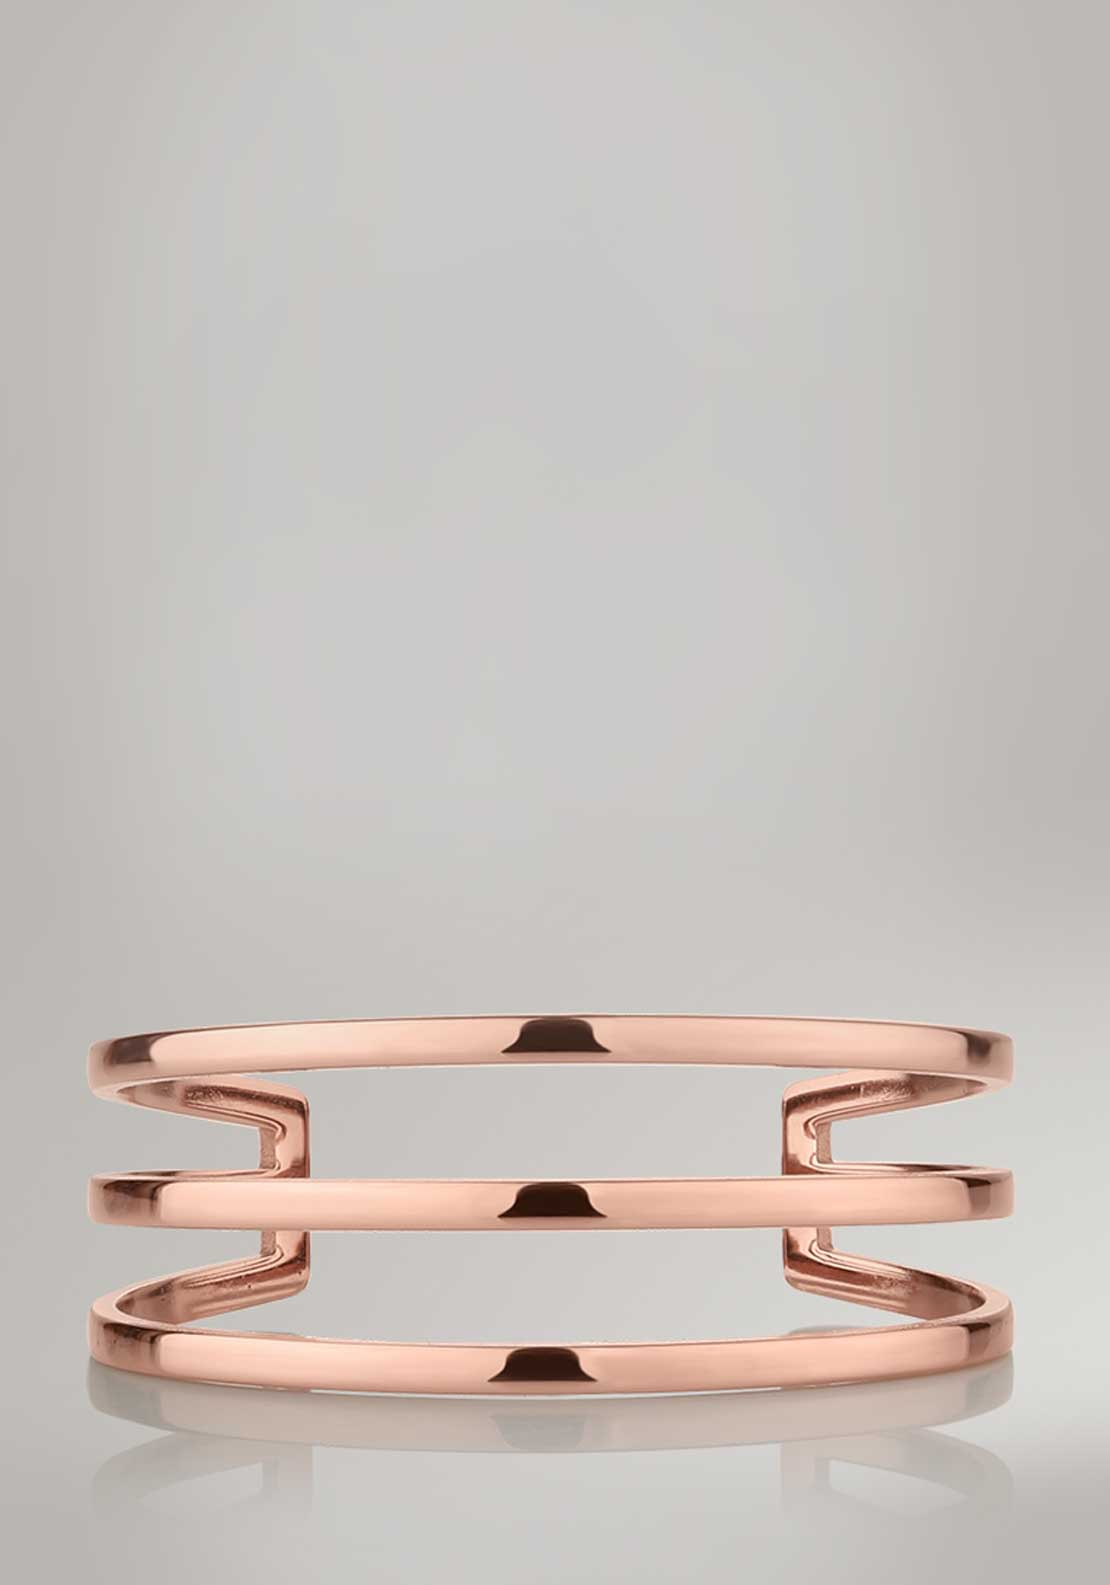 Newbridge Silverware Mona Lisa Bangel, Rose Gold